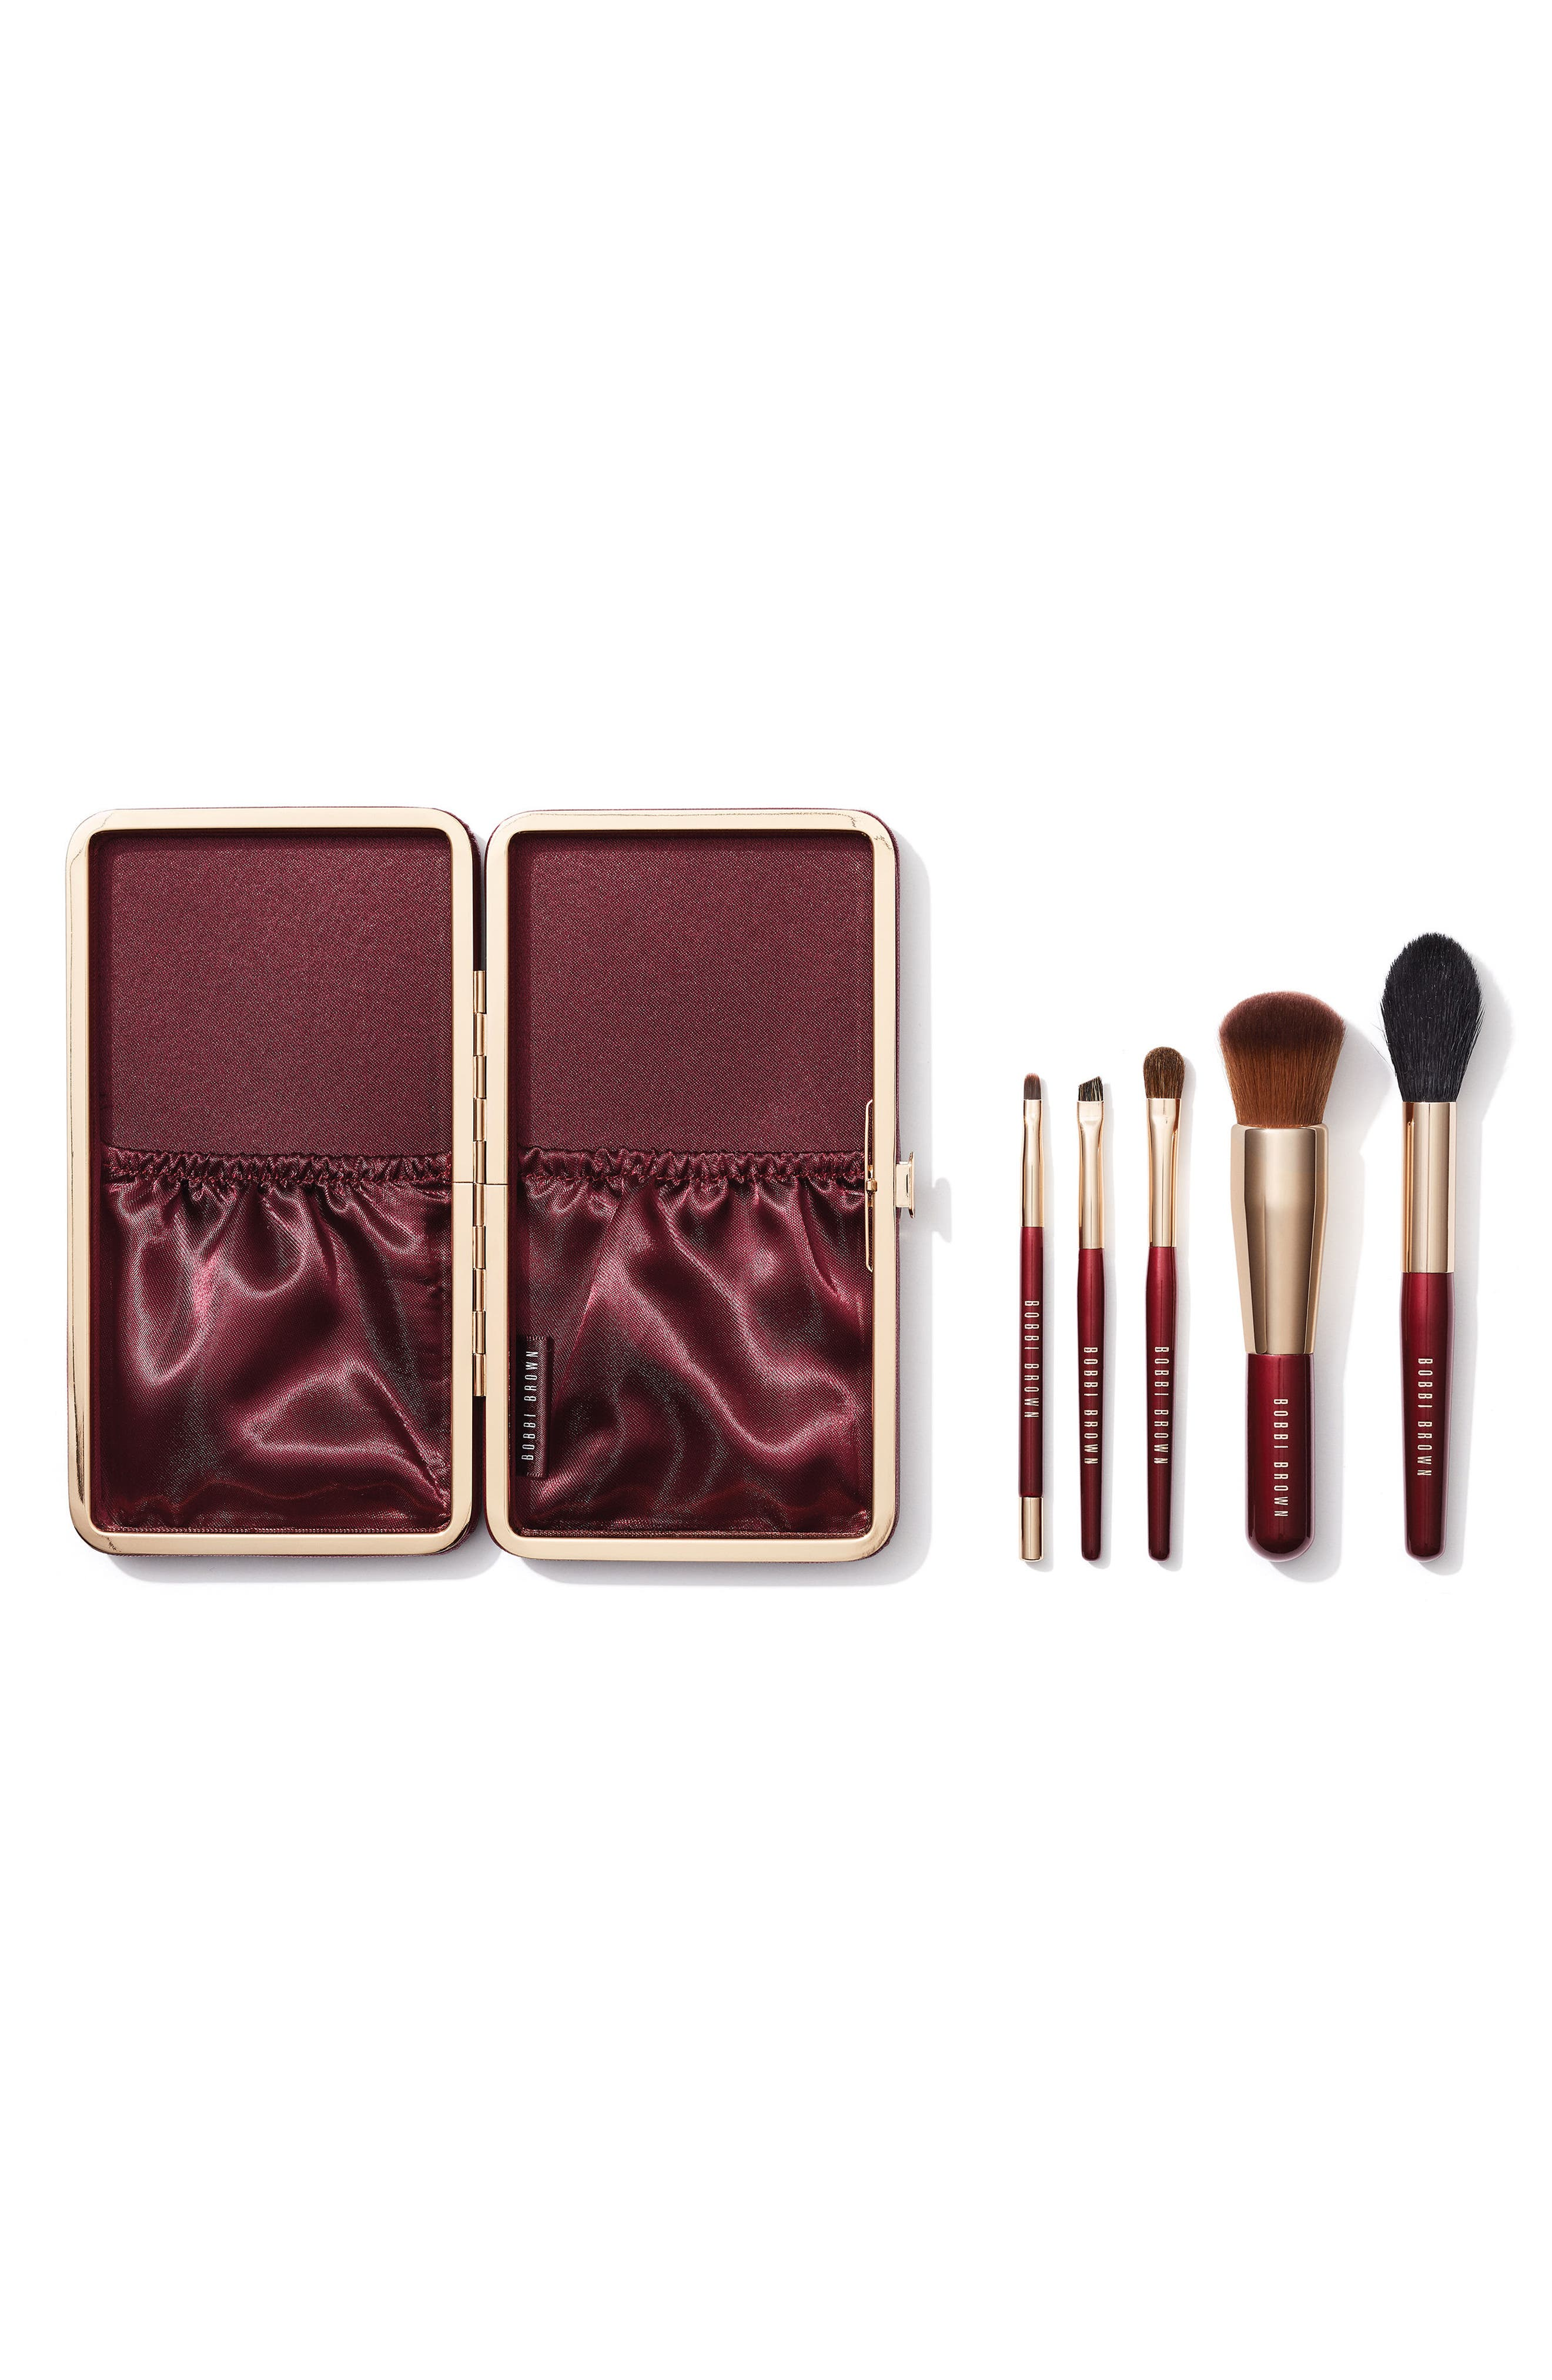 bobbi brown brushes uses. bobbi brown travel brush set ($228 value) brushes uses 2